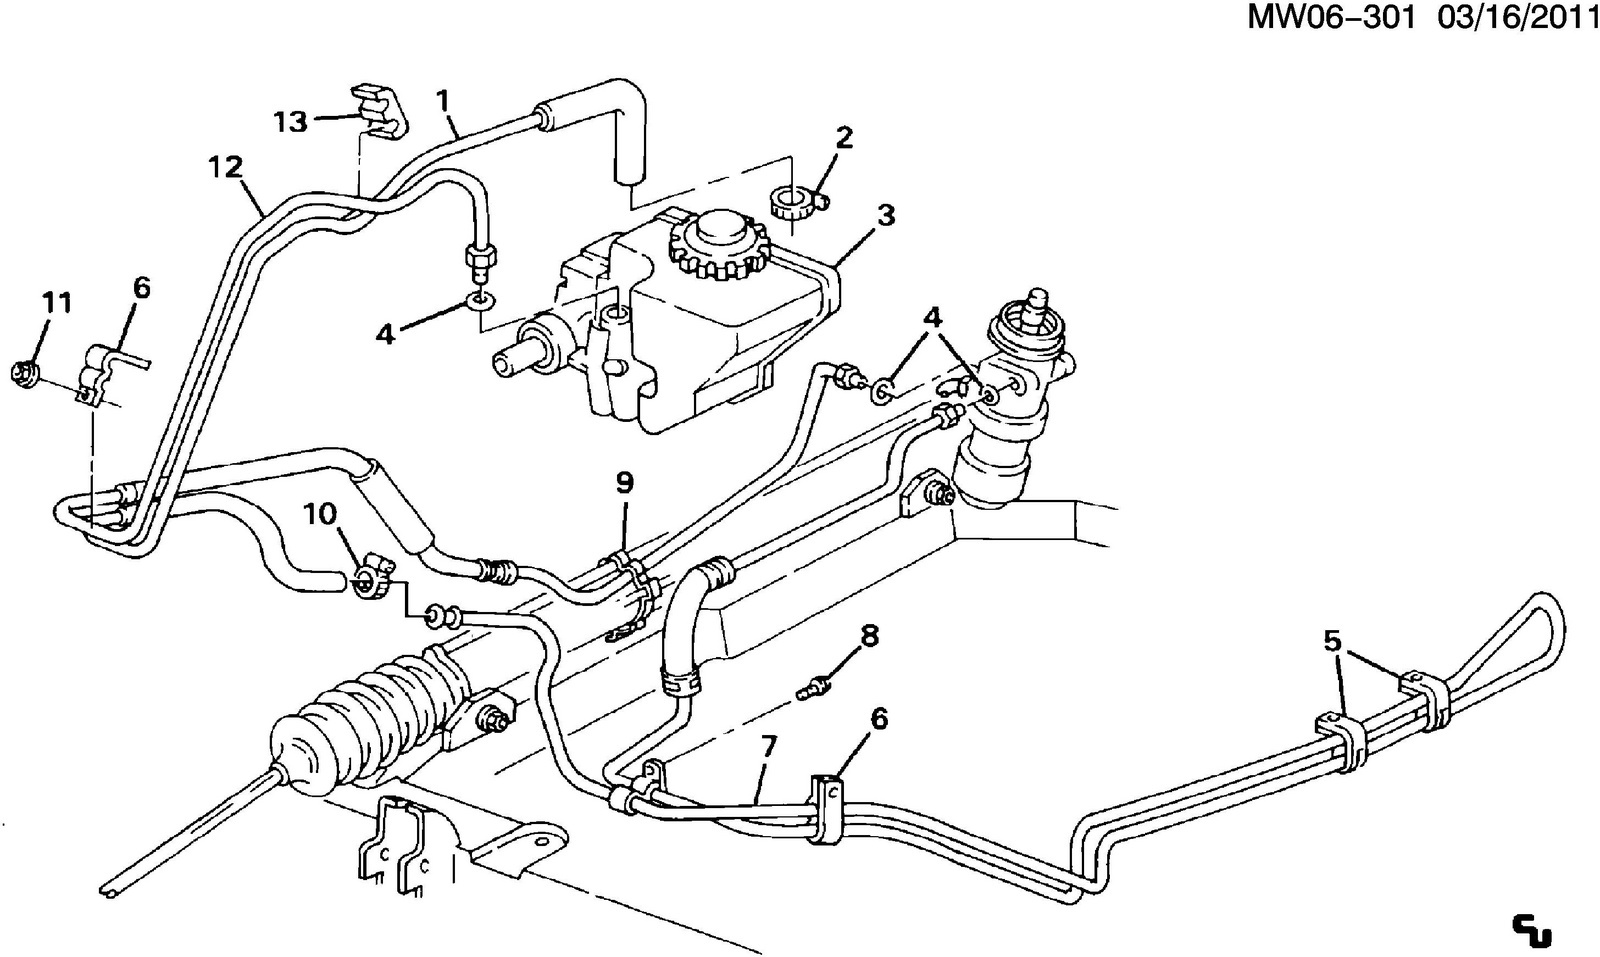 02 accord power steering hose diagram  02  free engine image for user manual download